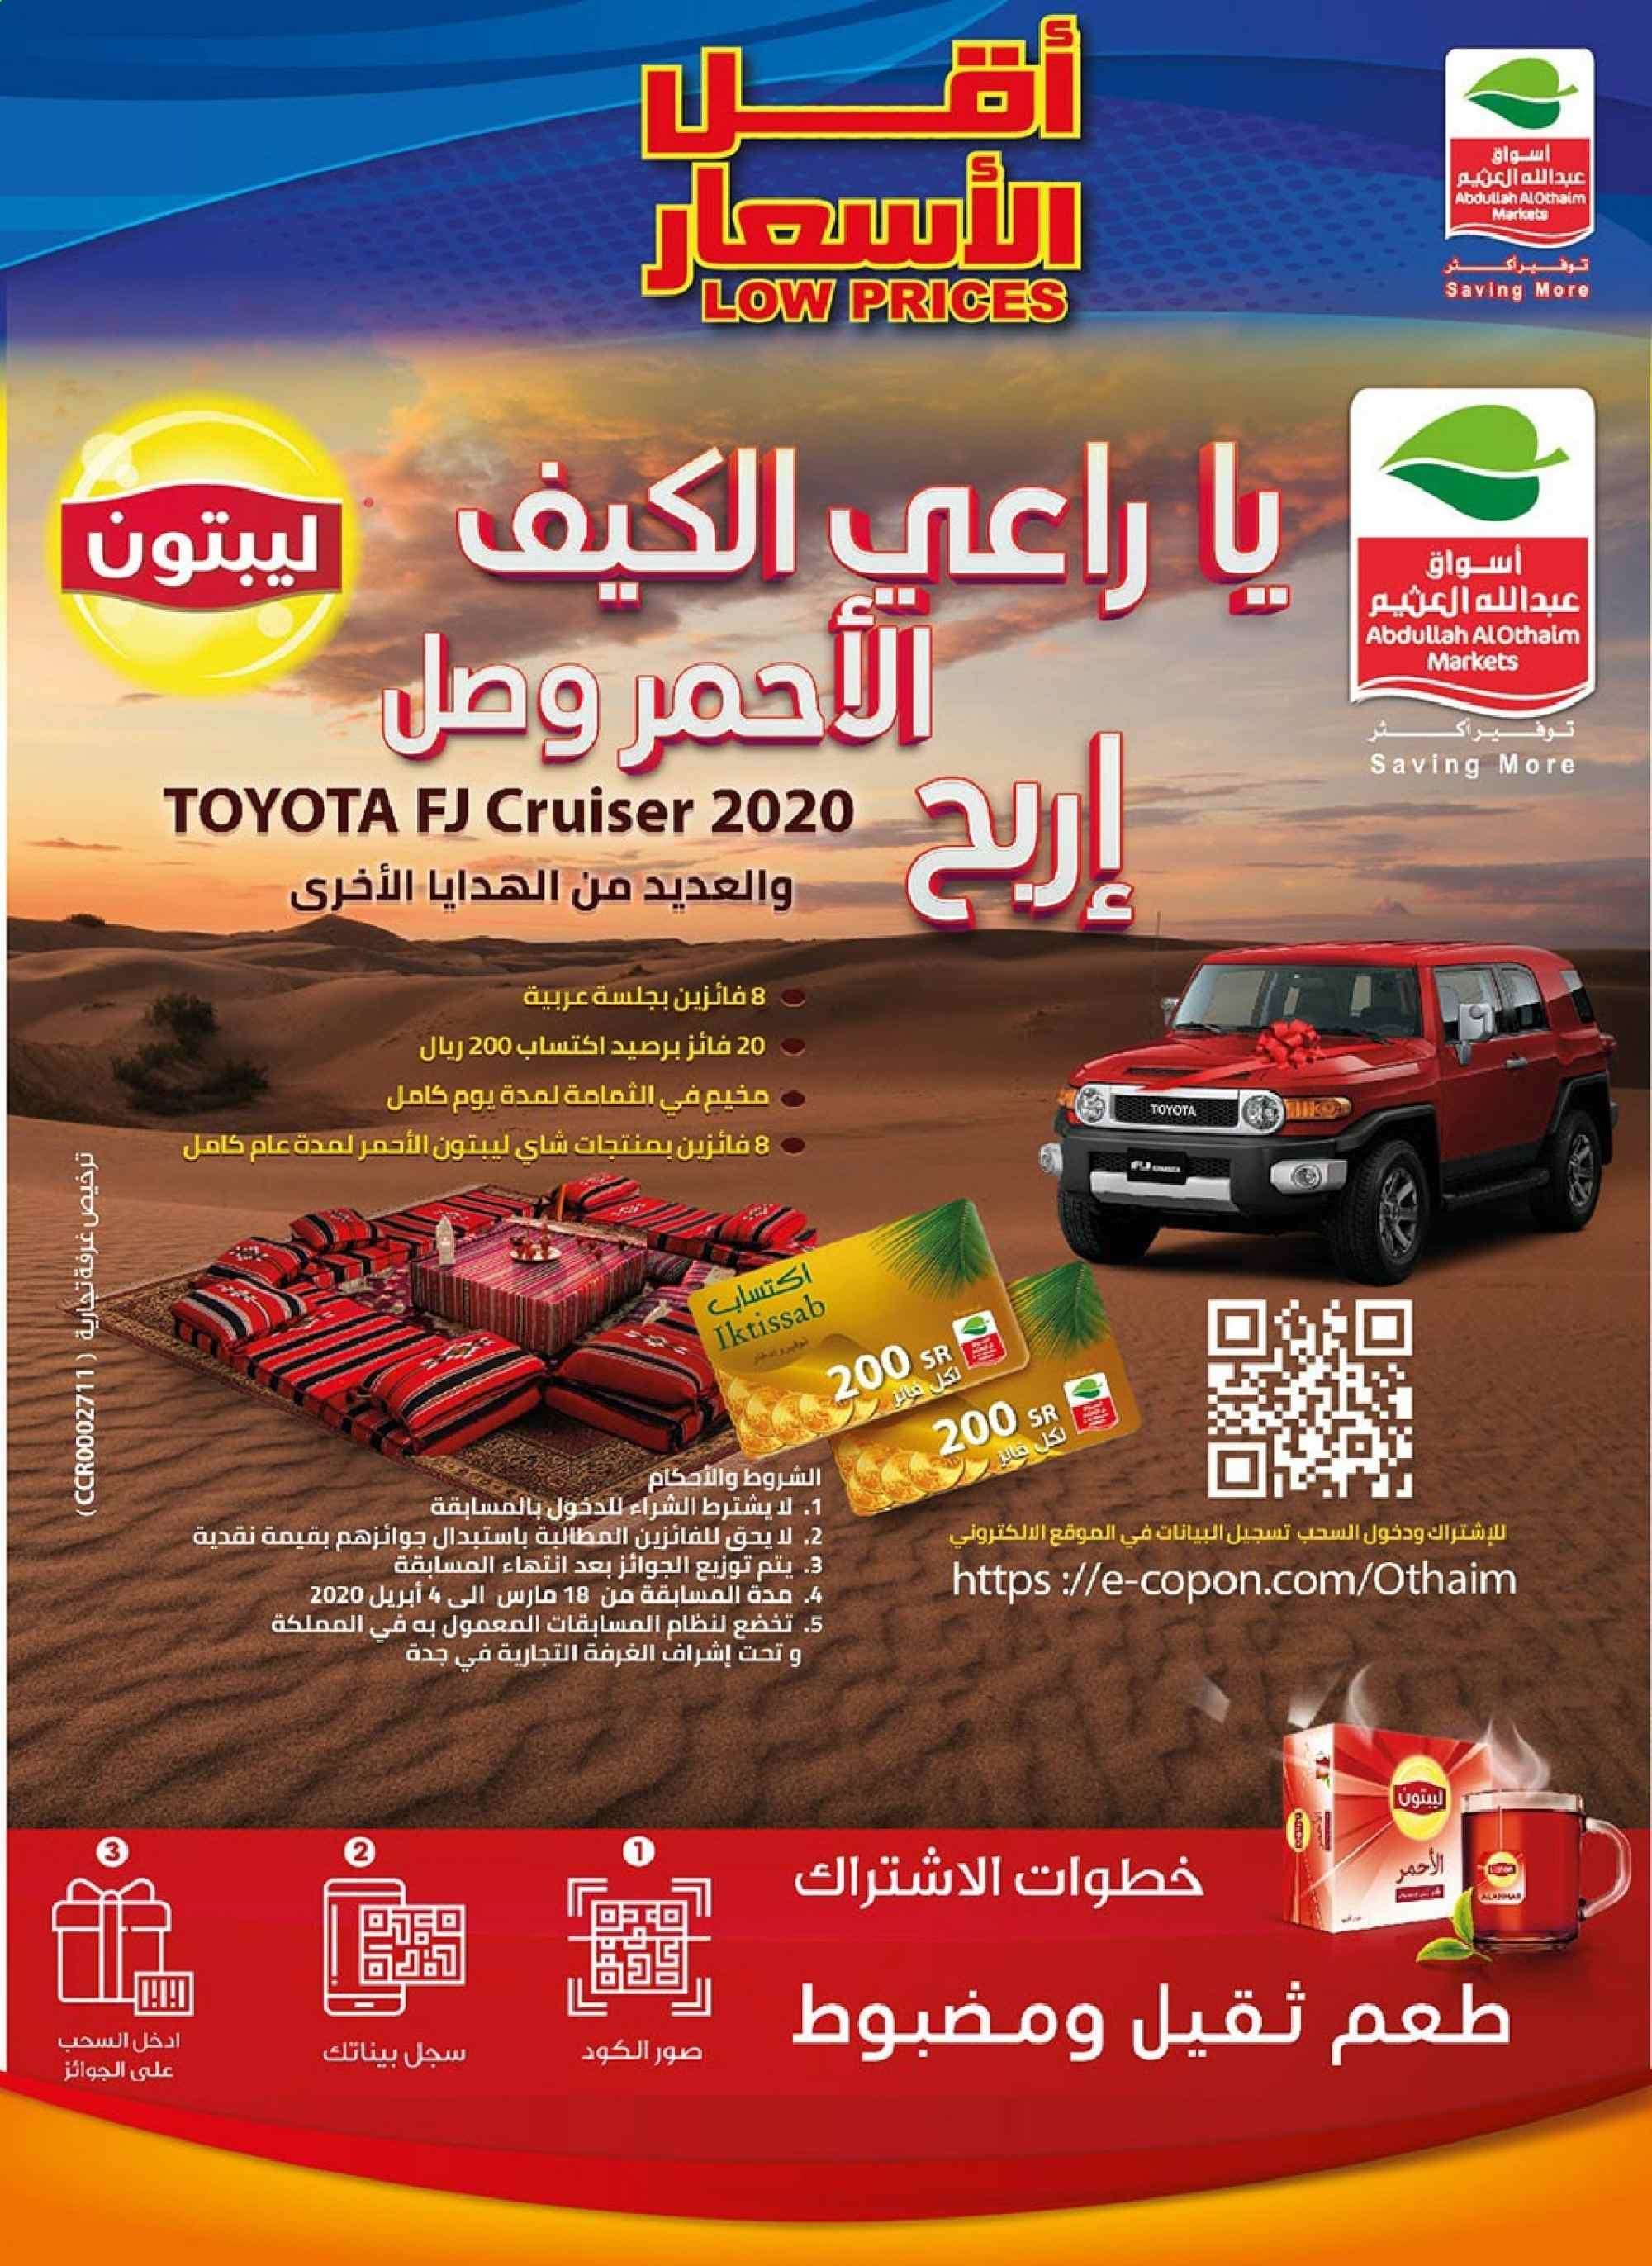 Abdullah Al Othaim Markets Offer 03 18 2020 03 24 2020 Page 10 Top Offers